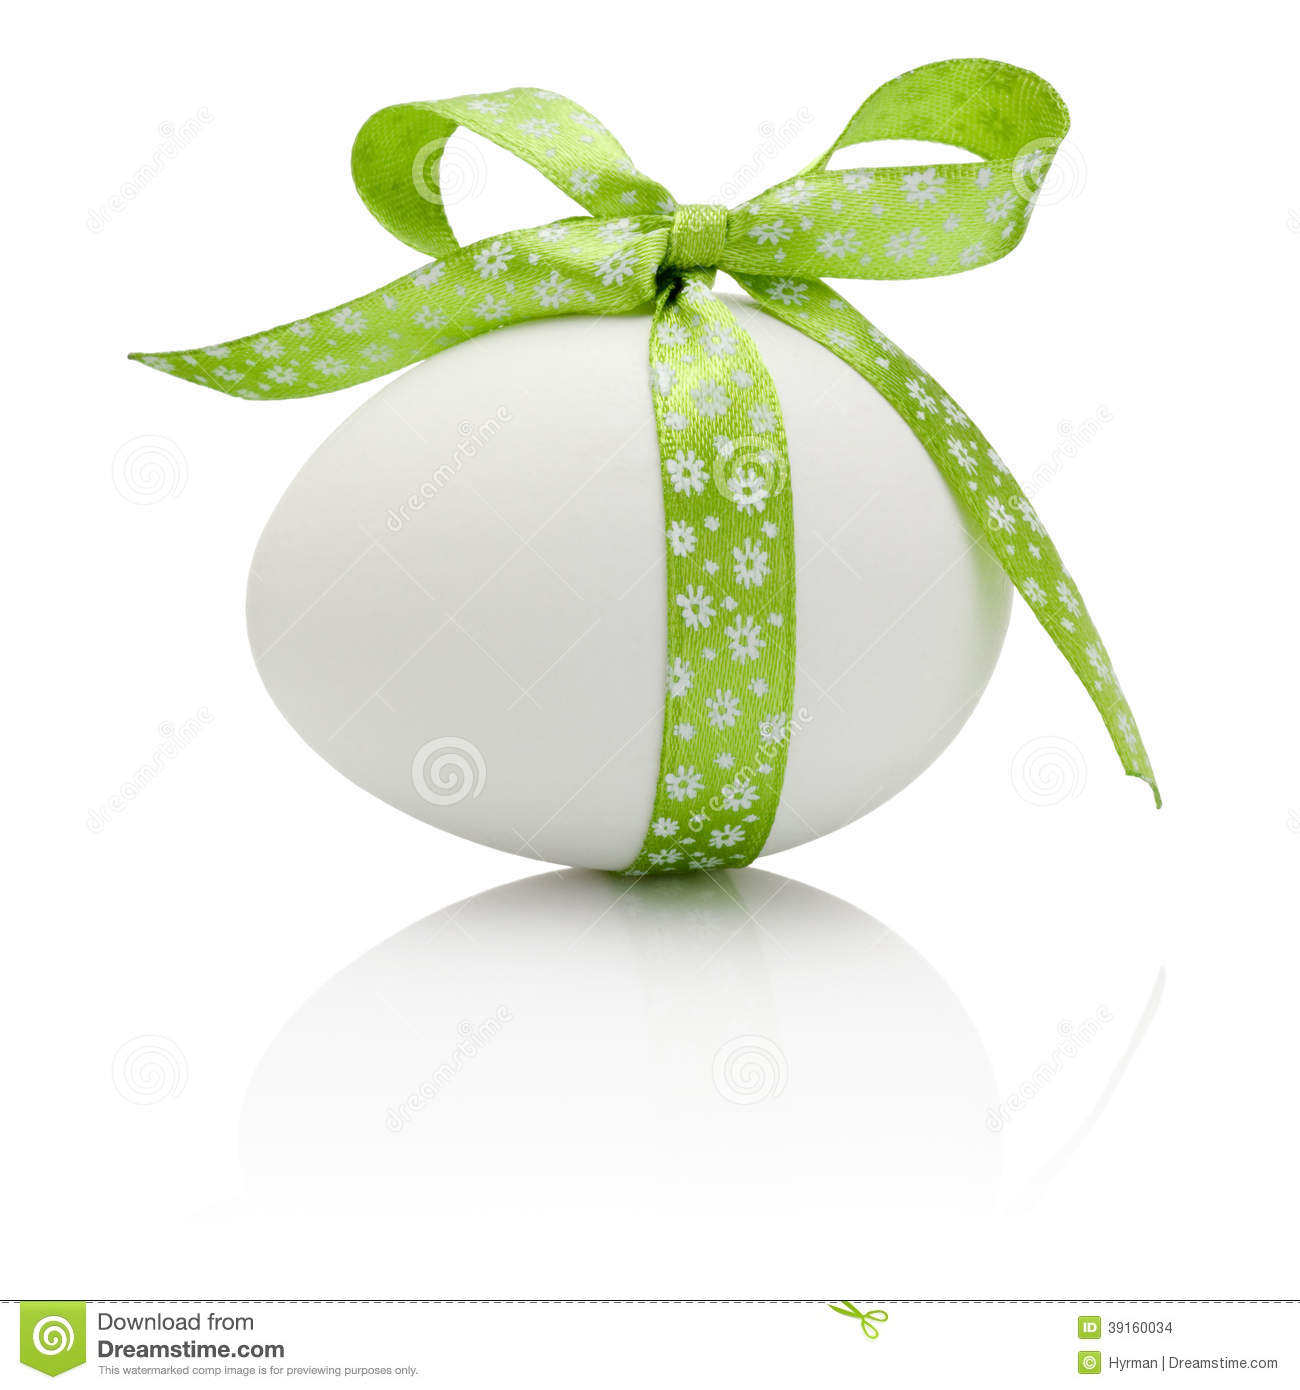 Easter egg with festive green bow isolated